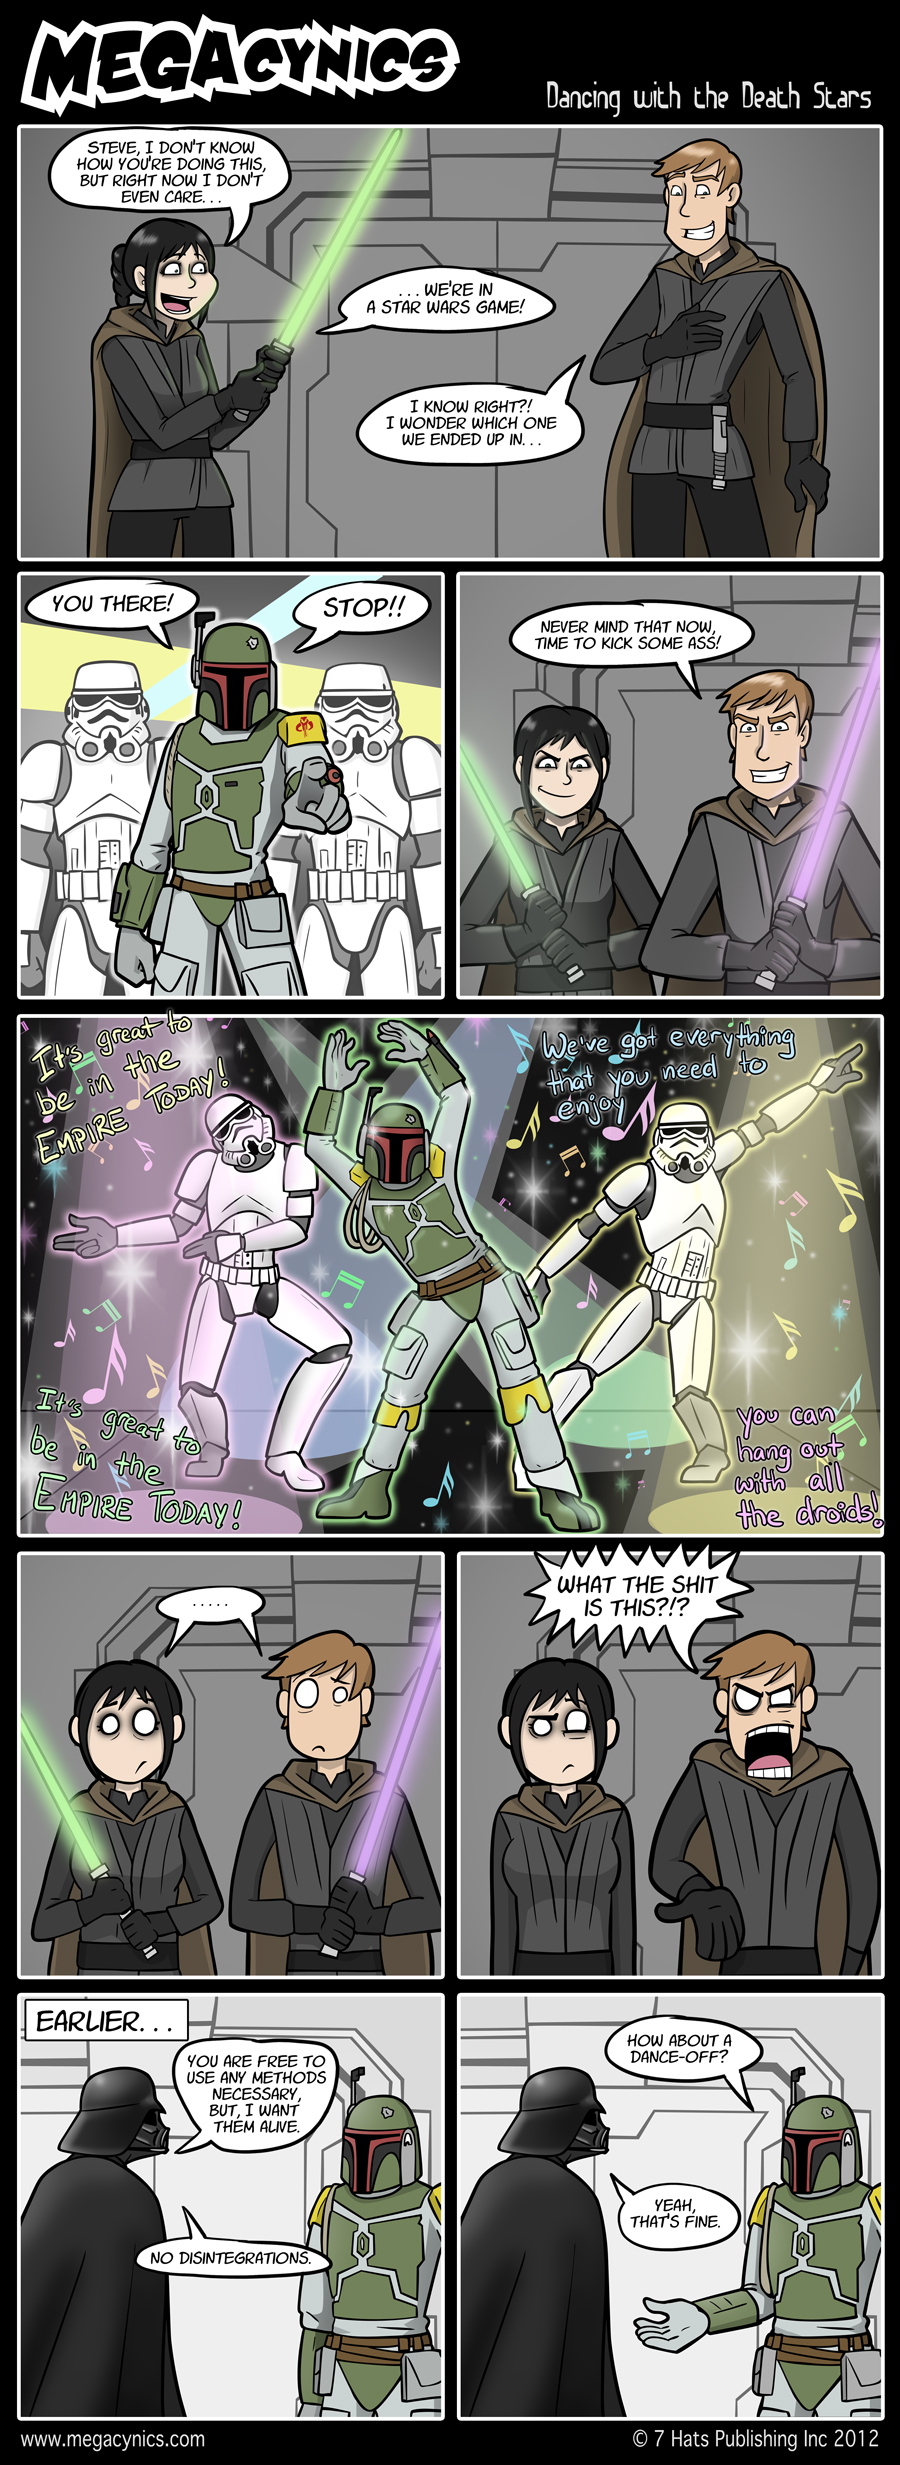 MegaCynics: Dancing with the Death Stars (Apr 13, 2012)